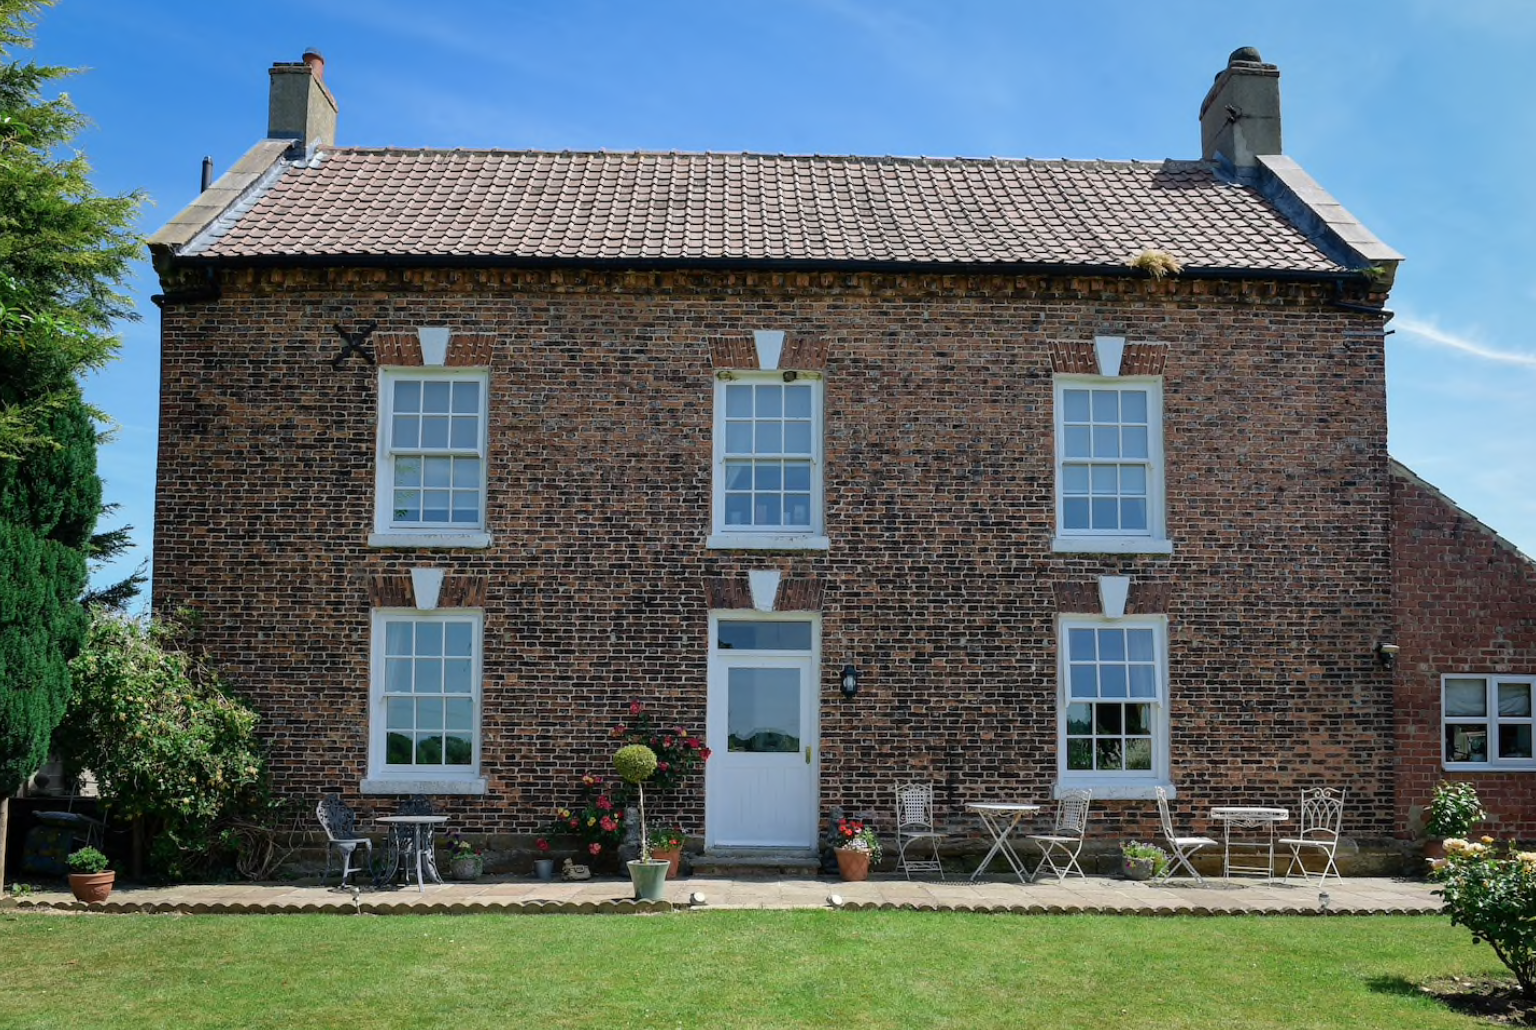 Low Osgoodby Grange B&B